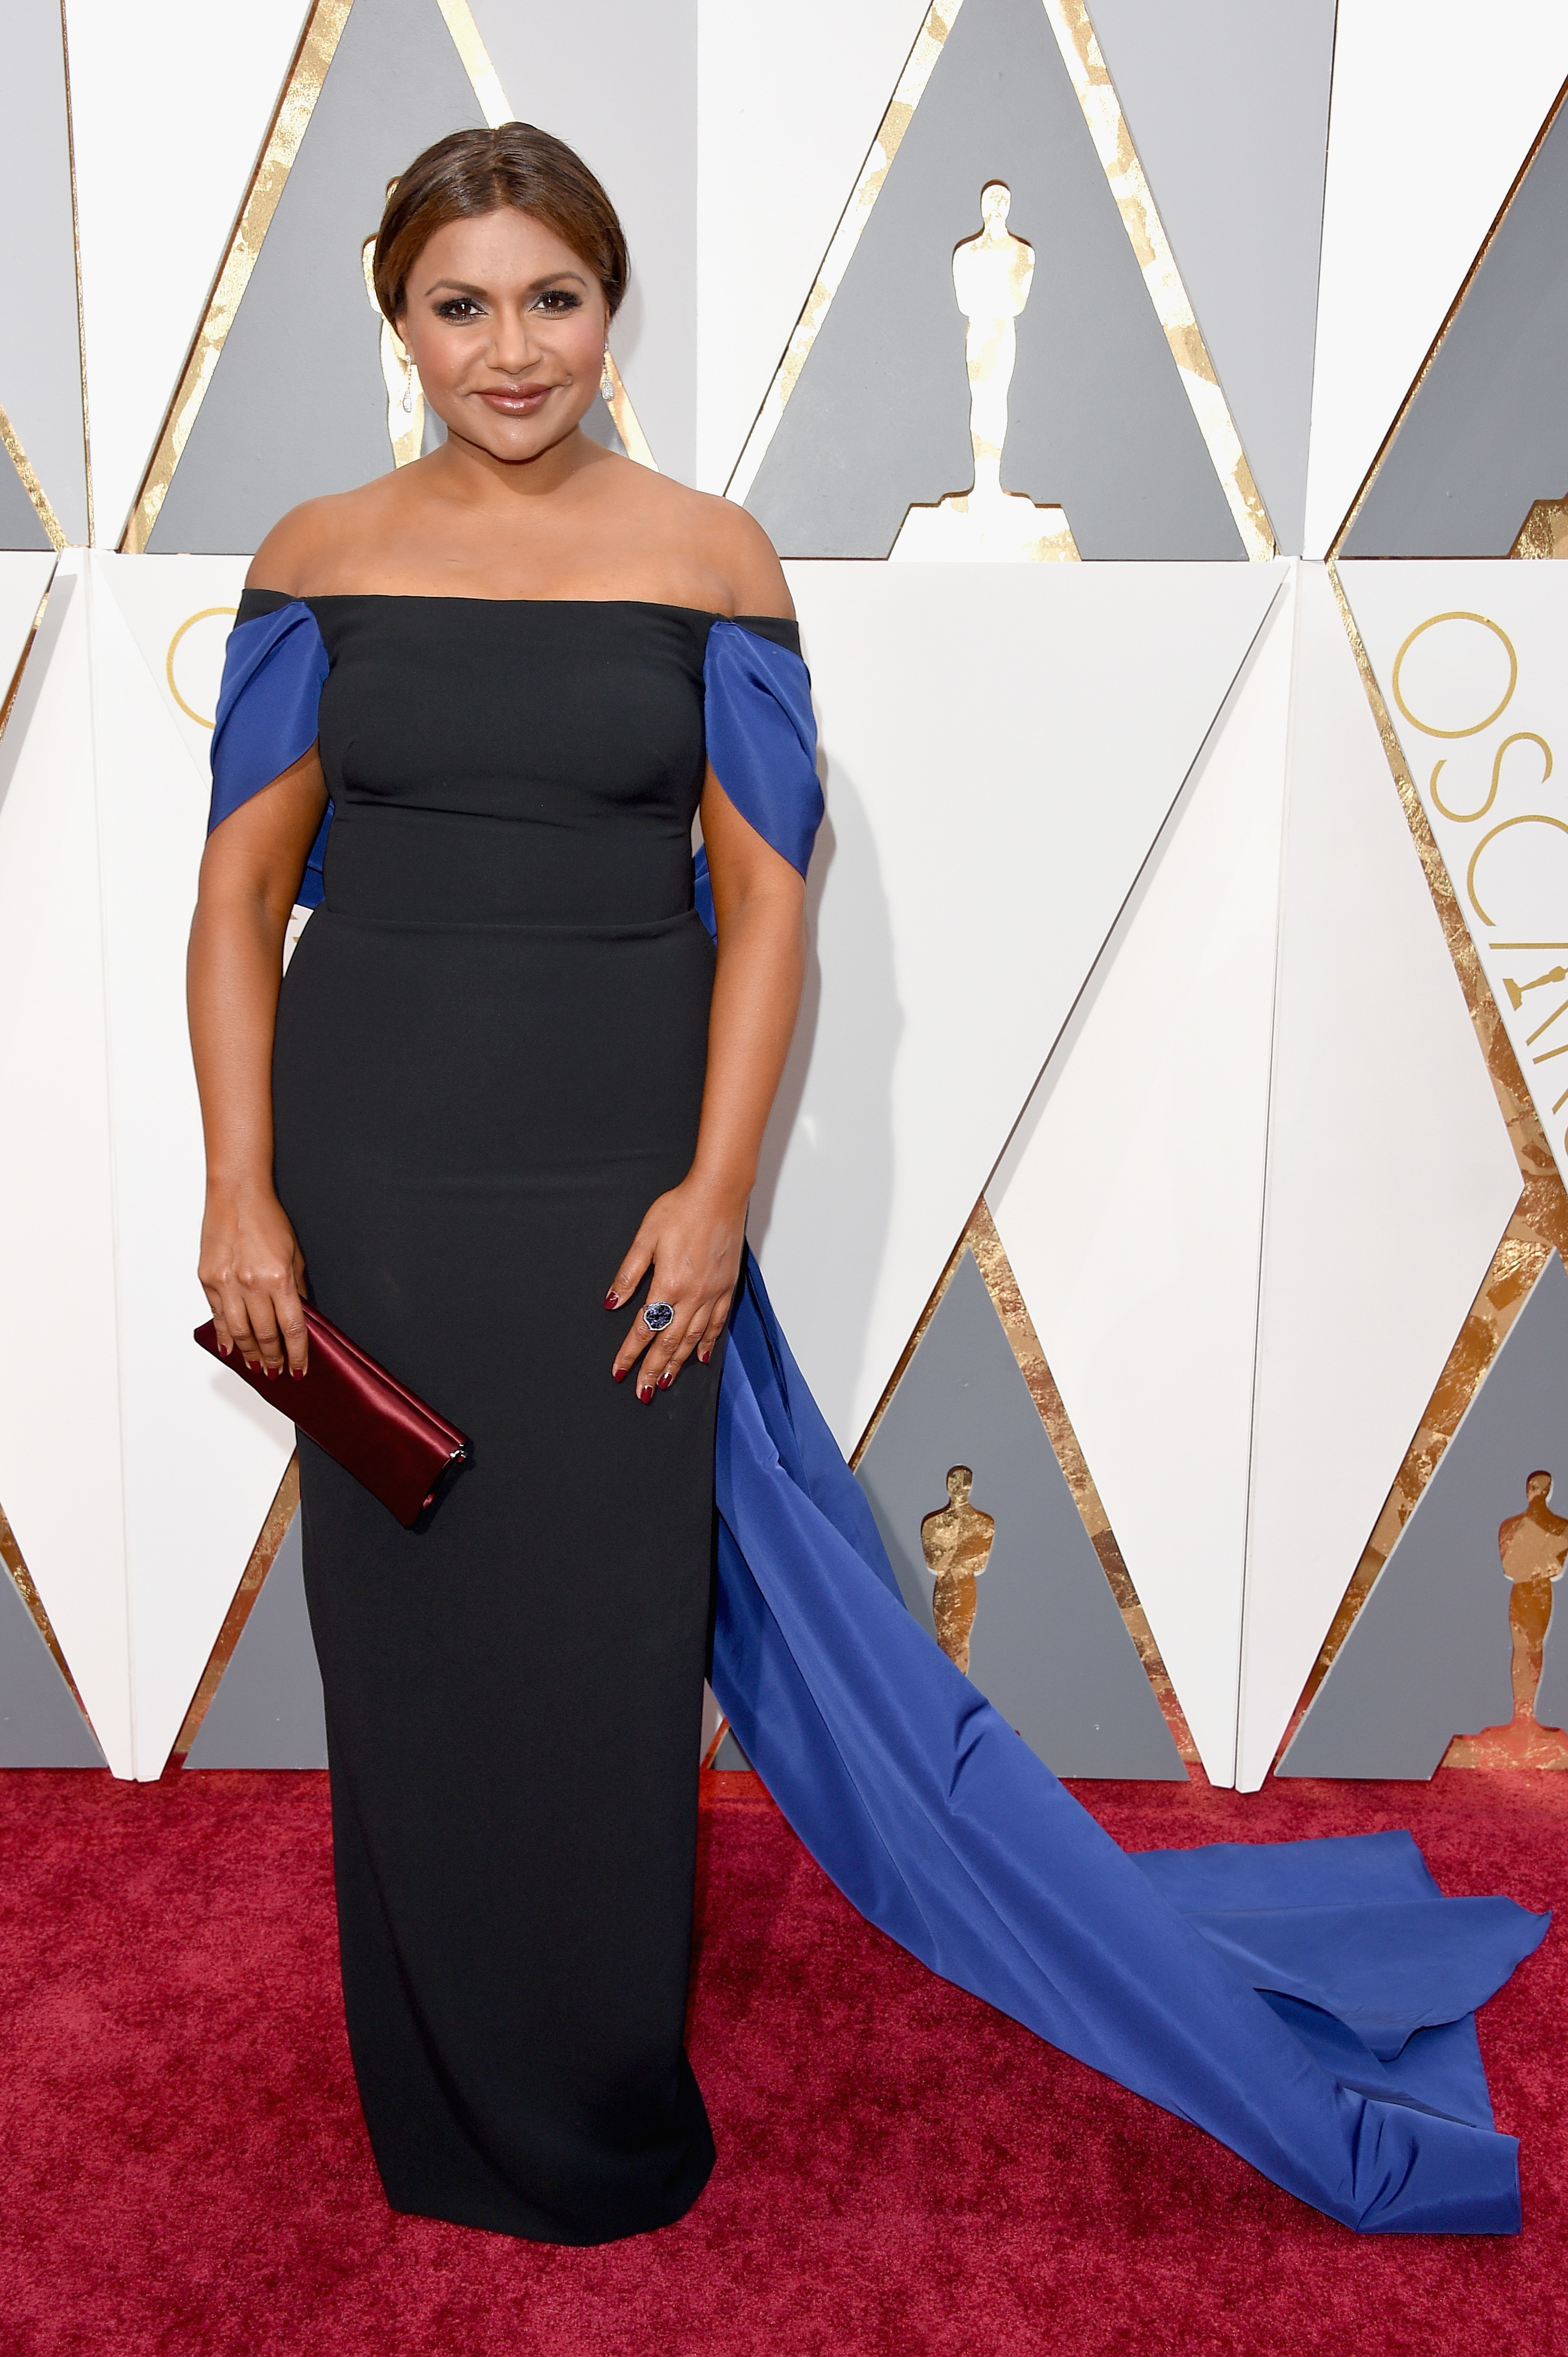 Mindy Kaling attends the 88th Annual Academy Awards on Feb. 28, 2016 in Hollywood, Calif.